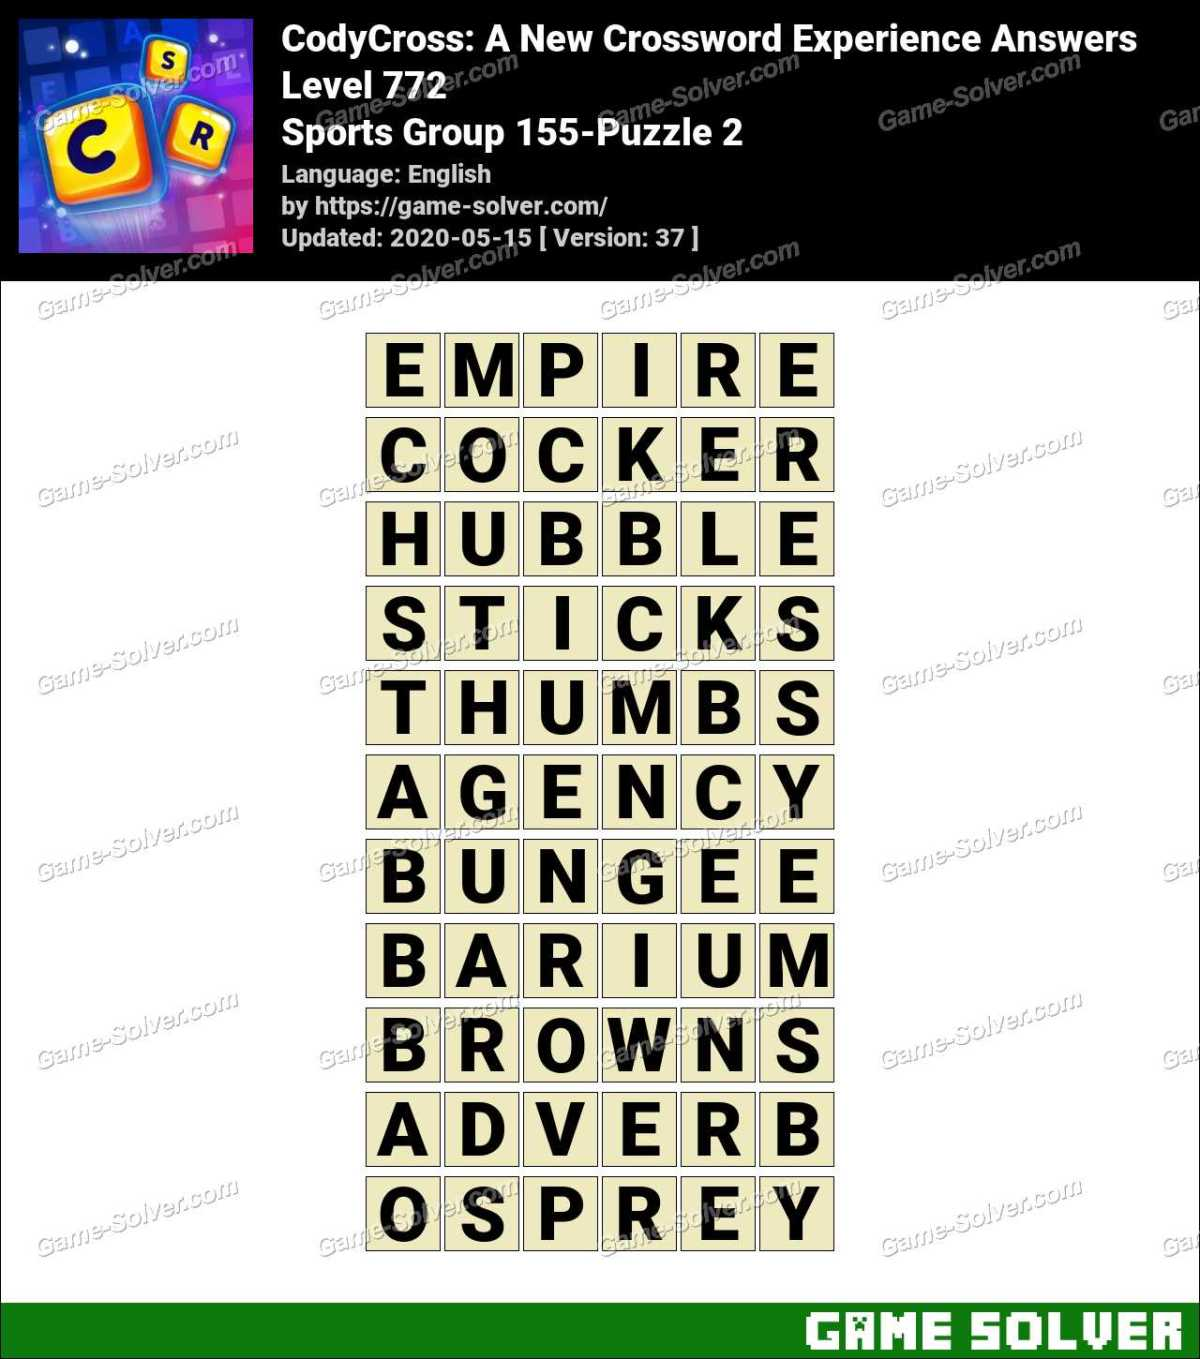 CodyCross Sports Group 155-Puzzle 2 Answers